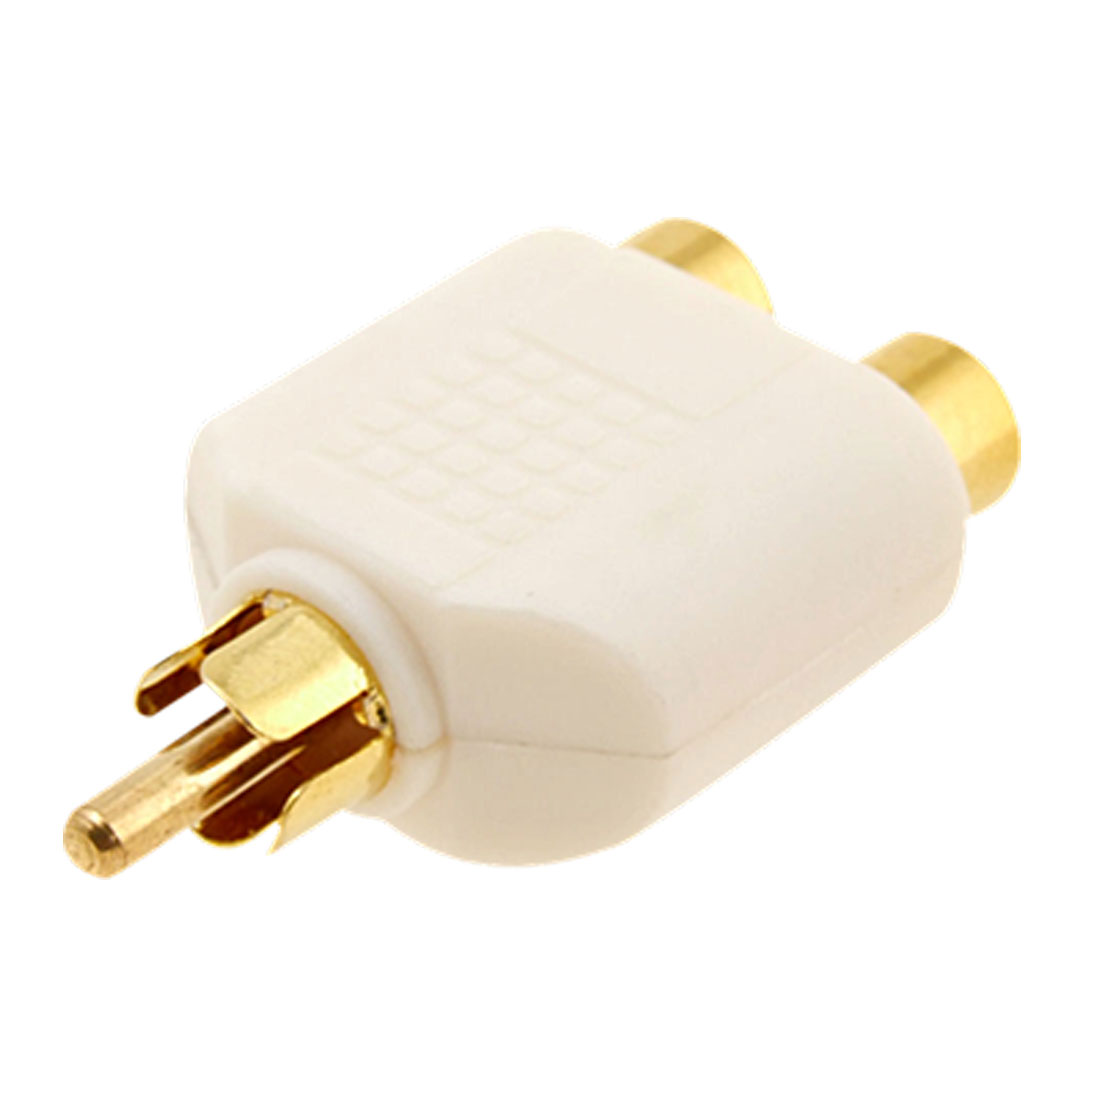 1 Male to 2 Female Digital RCA AV Splitter Plug Adapter